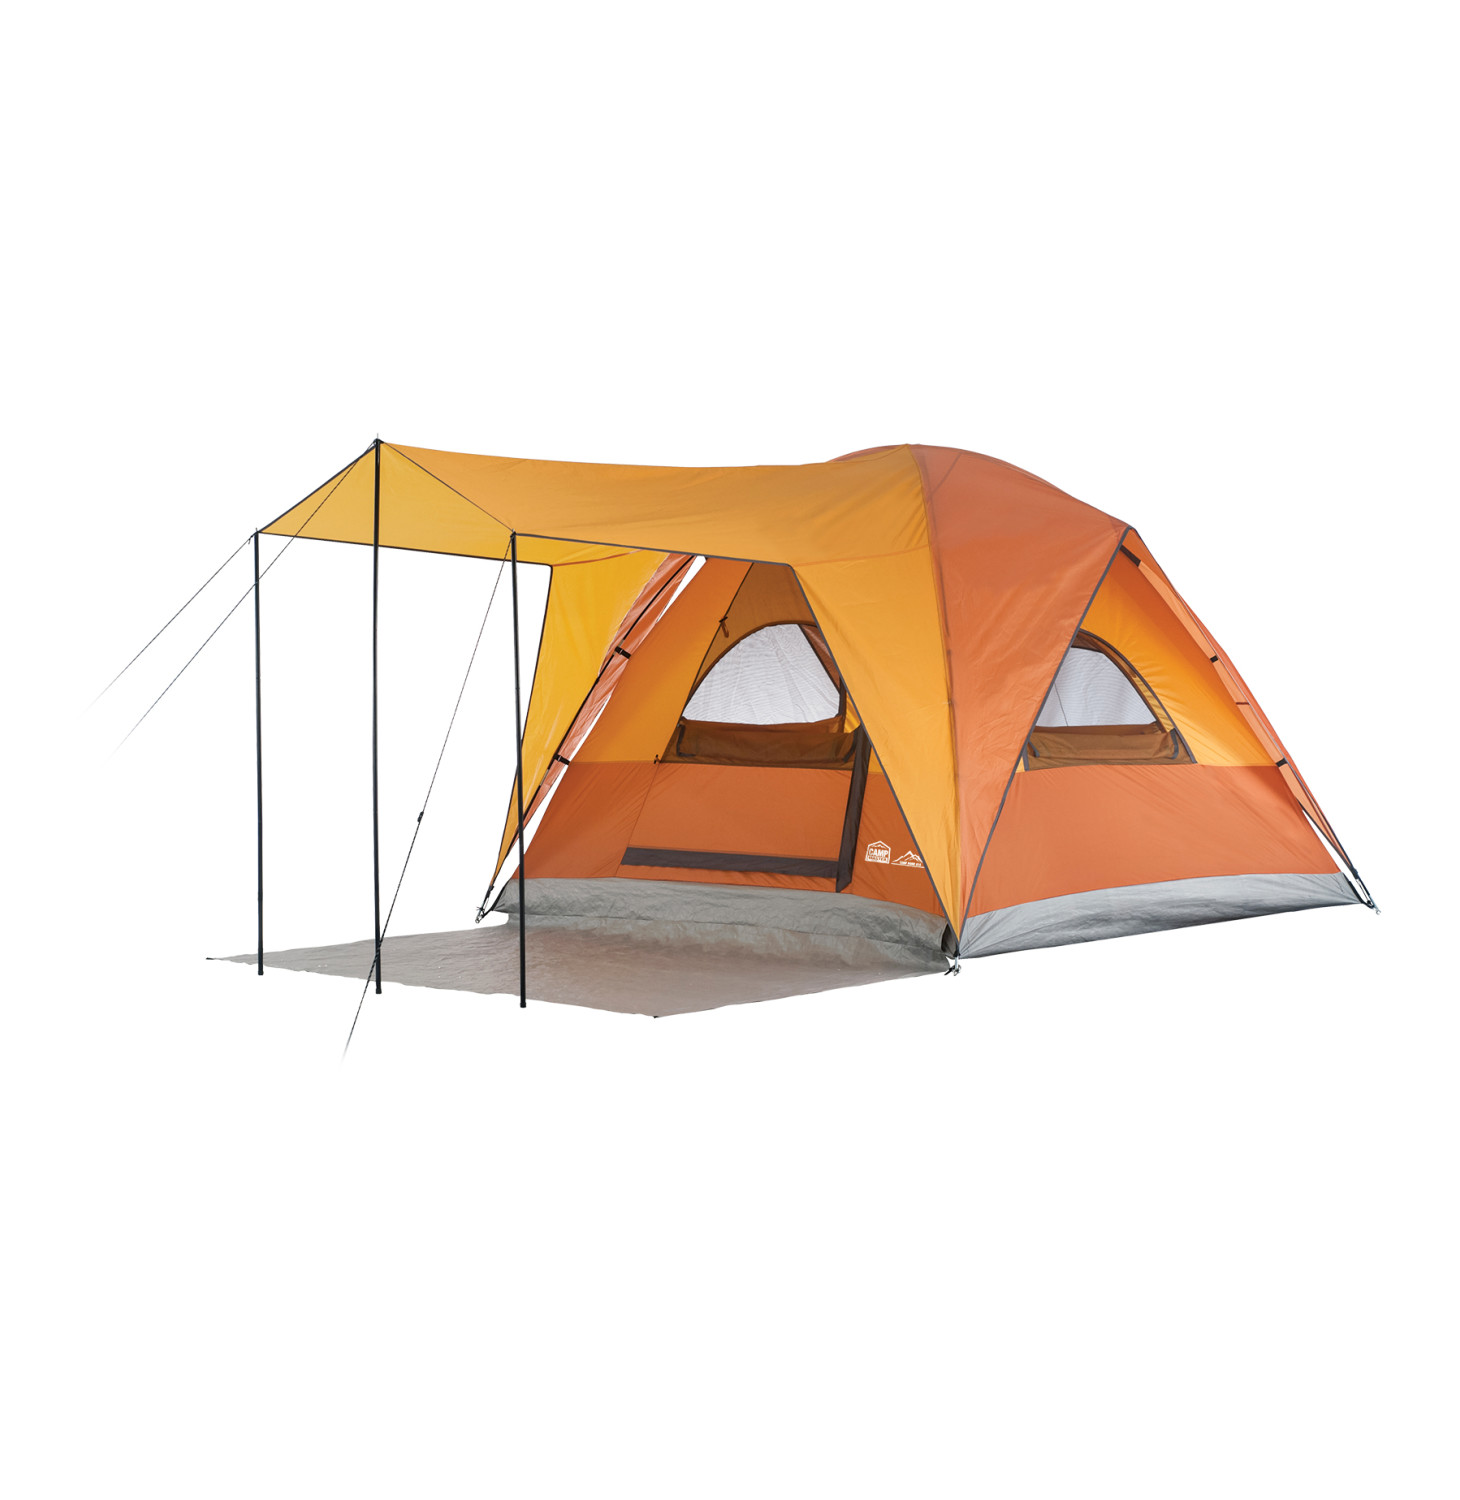 TENT. CAMPMASTER DOME 415. BRAND NEW DEMO TENT.